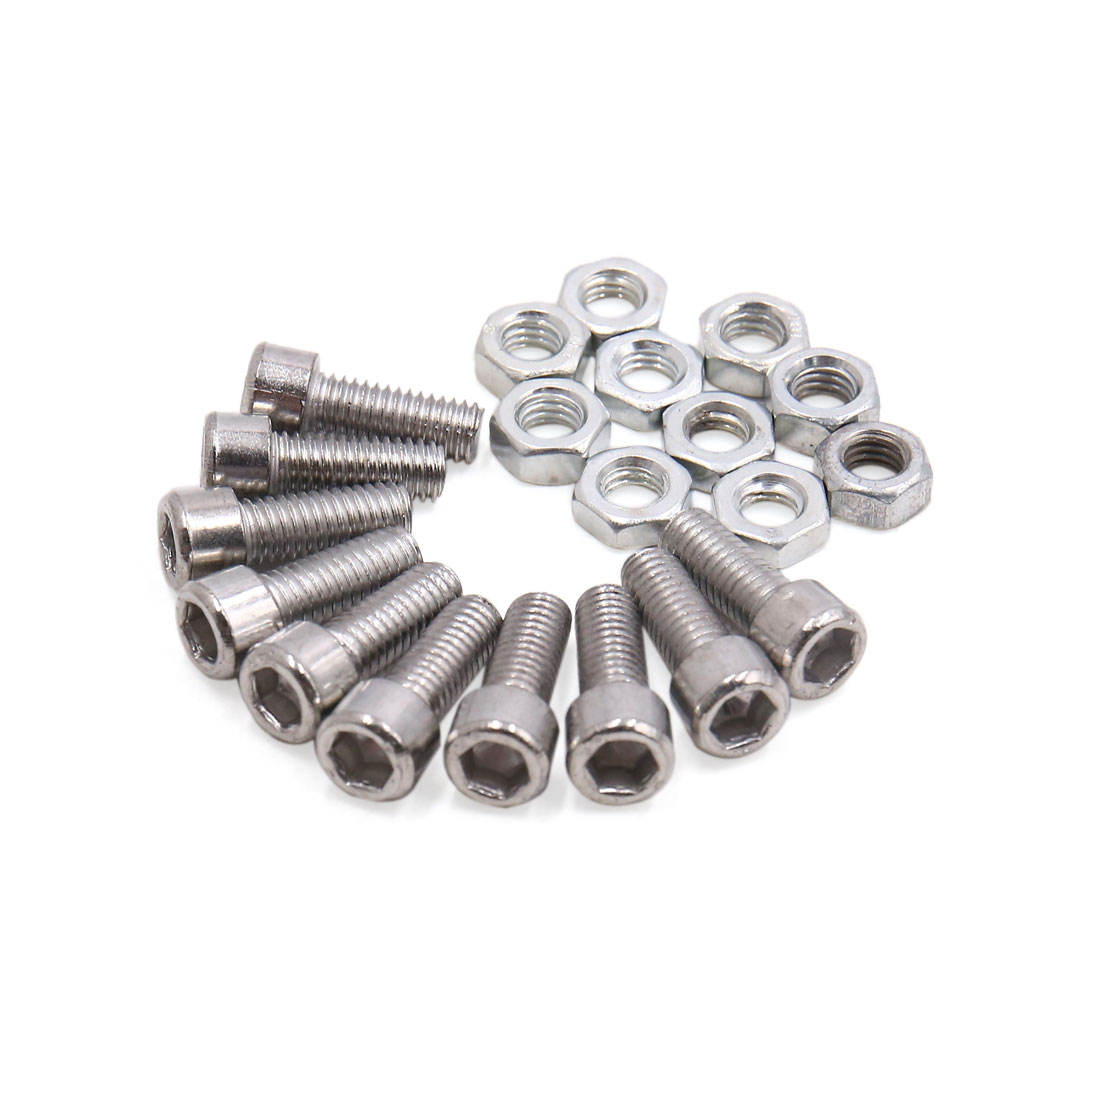 Universal Metal Motorcycle Windscreen License Plate M6 Bolts Screw 10Pcs - image 1 of 1